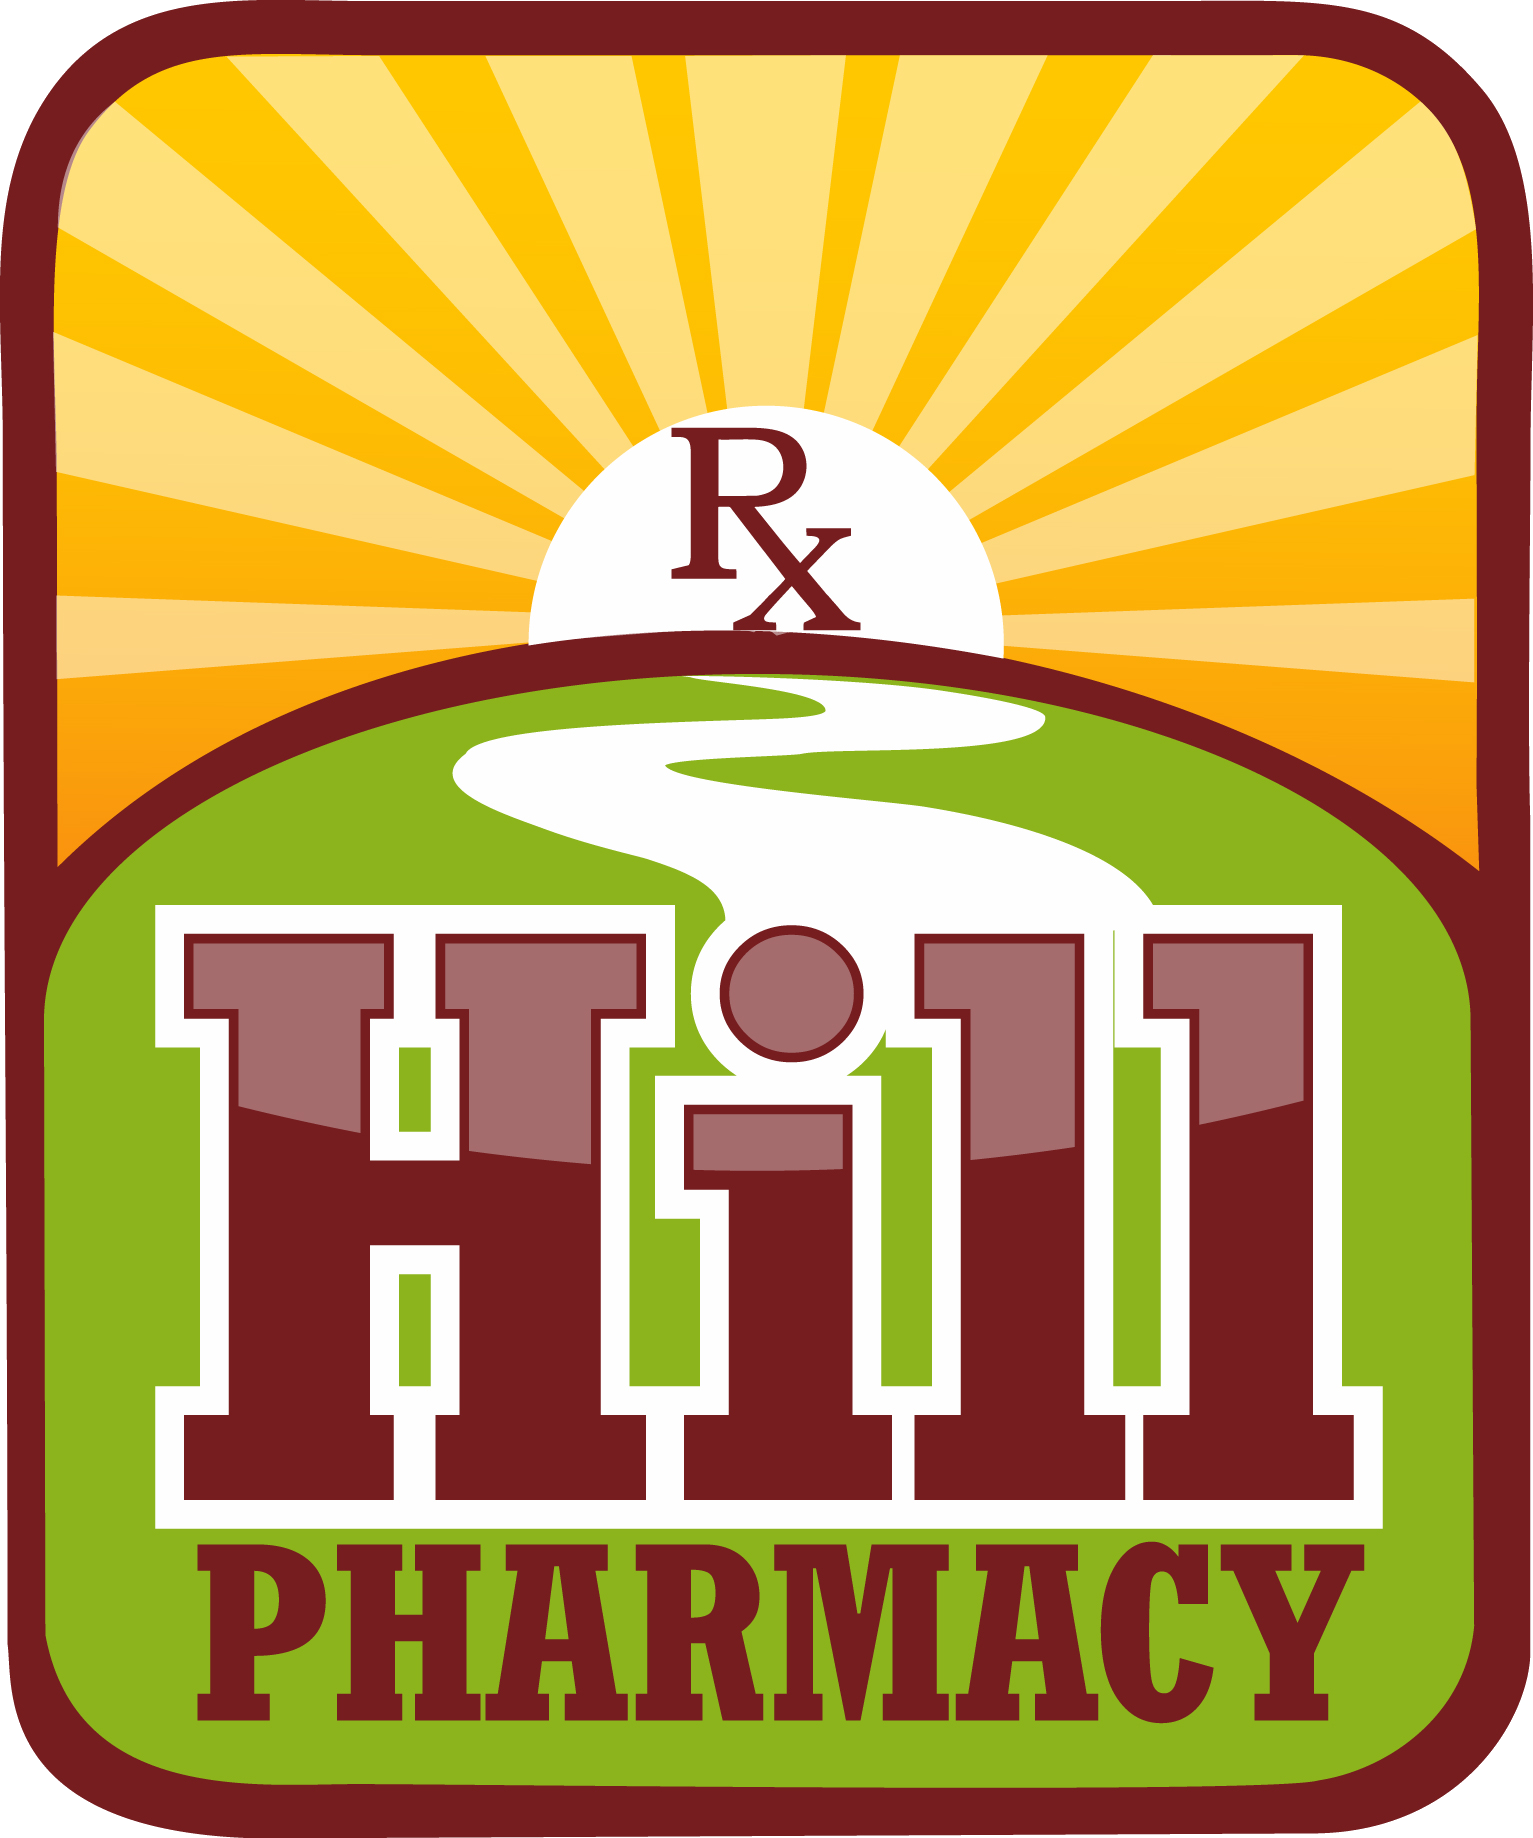 New - Hill Pharmacy